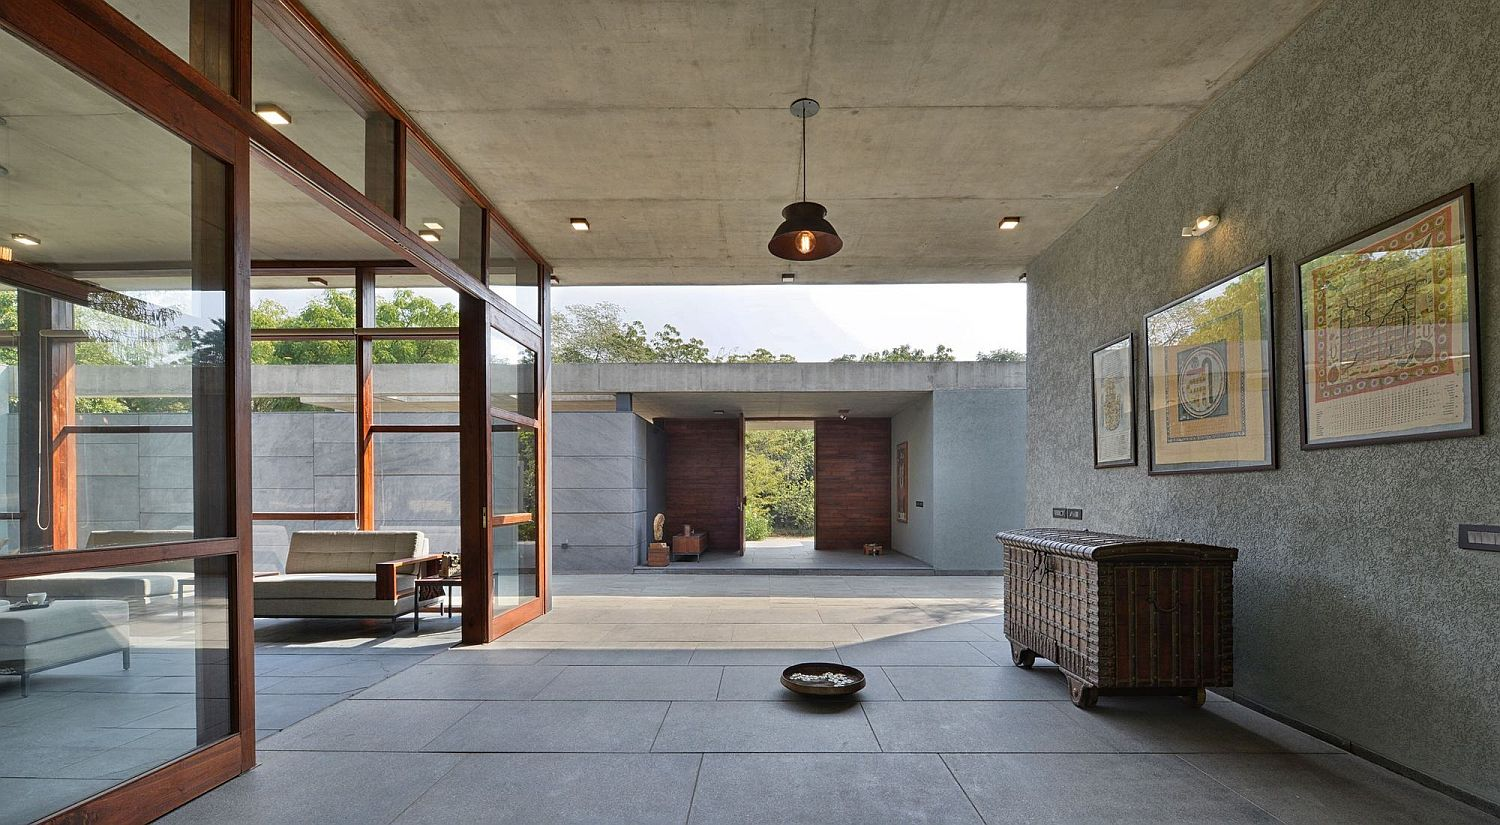 Naturally sourced stone and local materials create a relaxing guest house